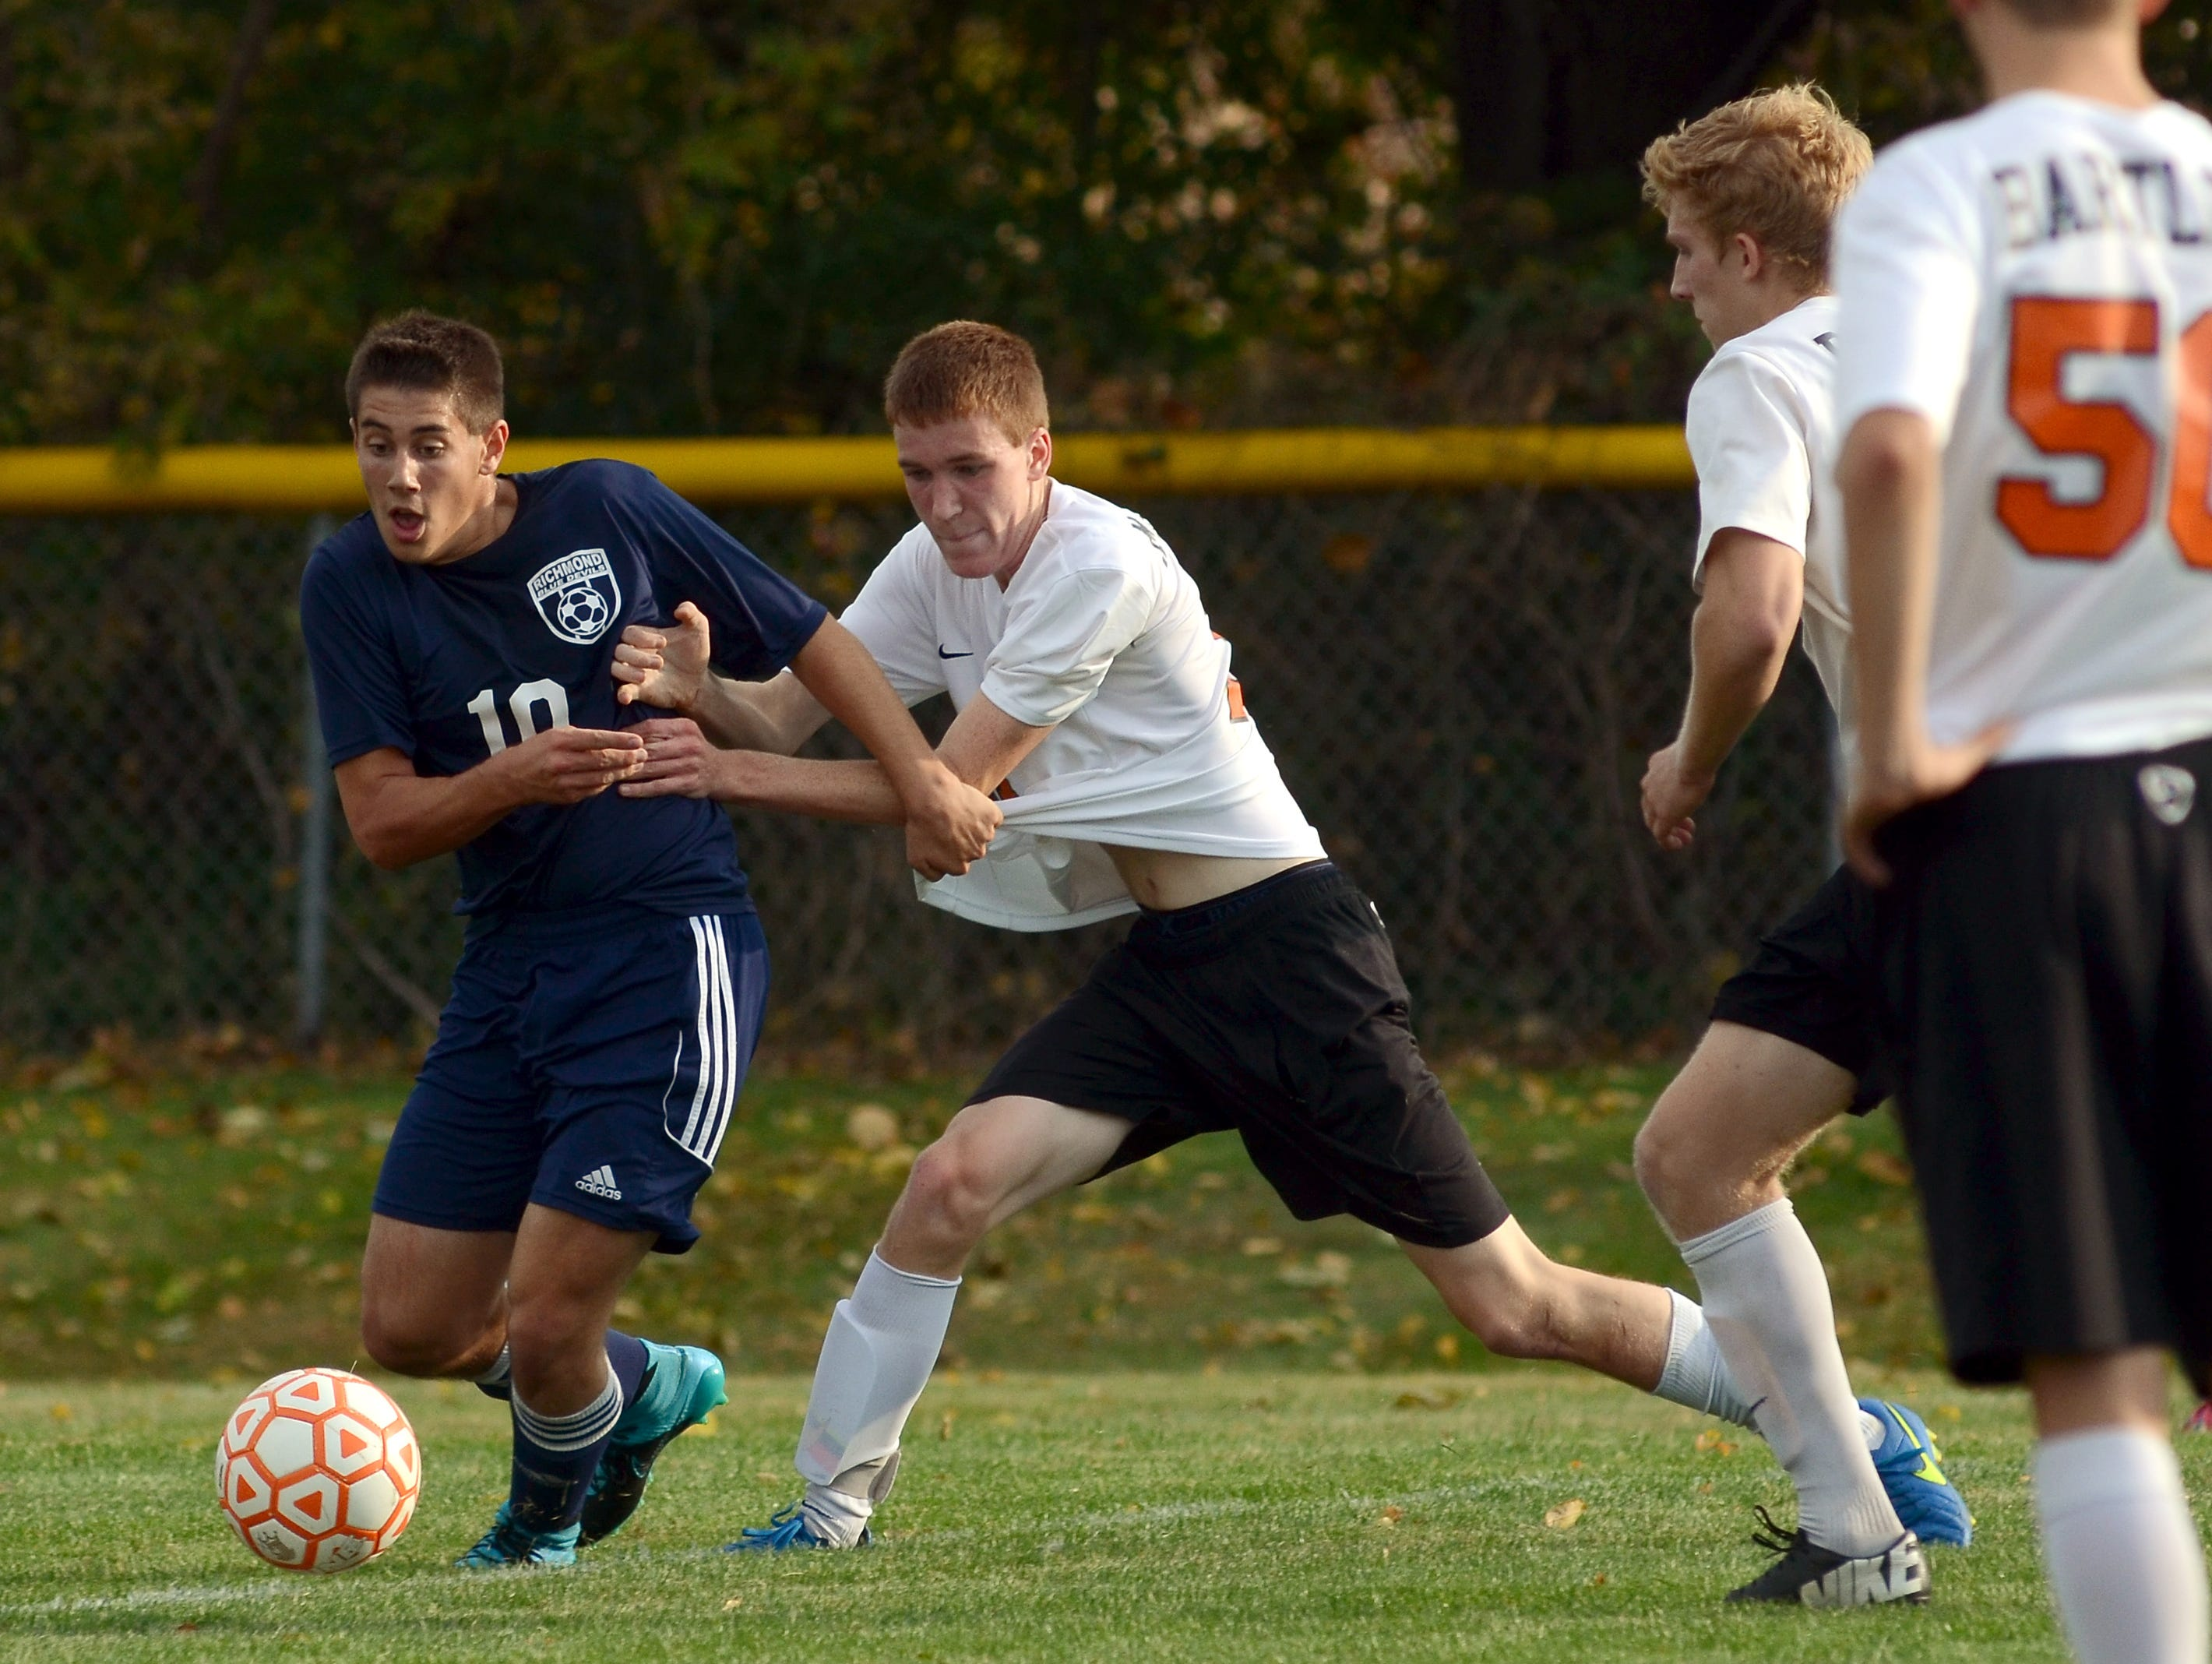 Richmonds' Matthew Schuster tries to keep Almonts' Zeck McCarthy away from the ball Monday, Oct. 12 during high school soccer action at Almont.